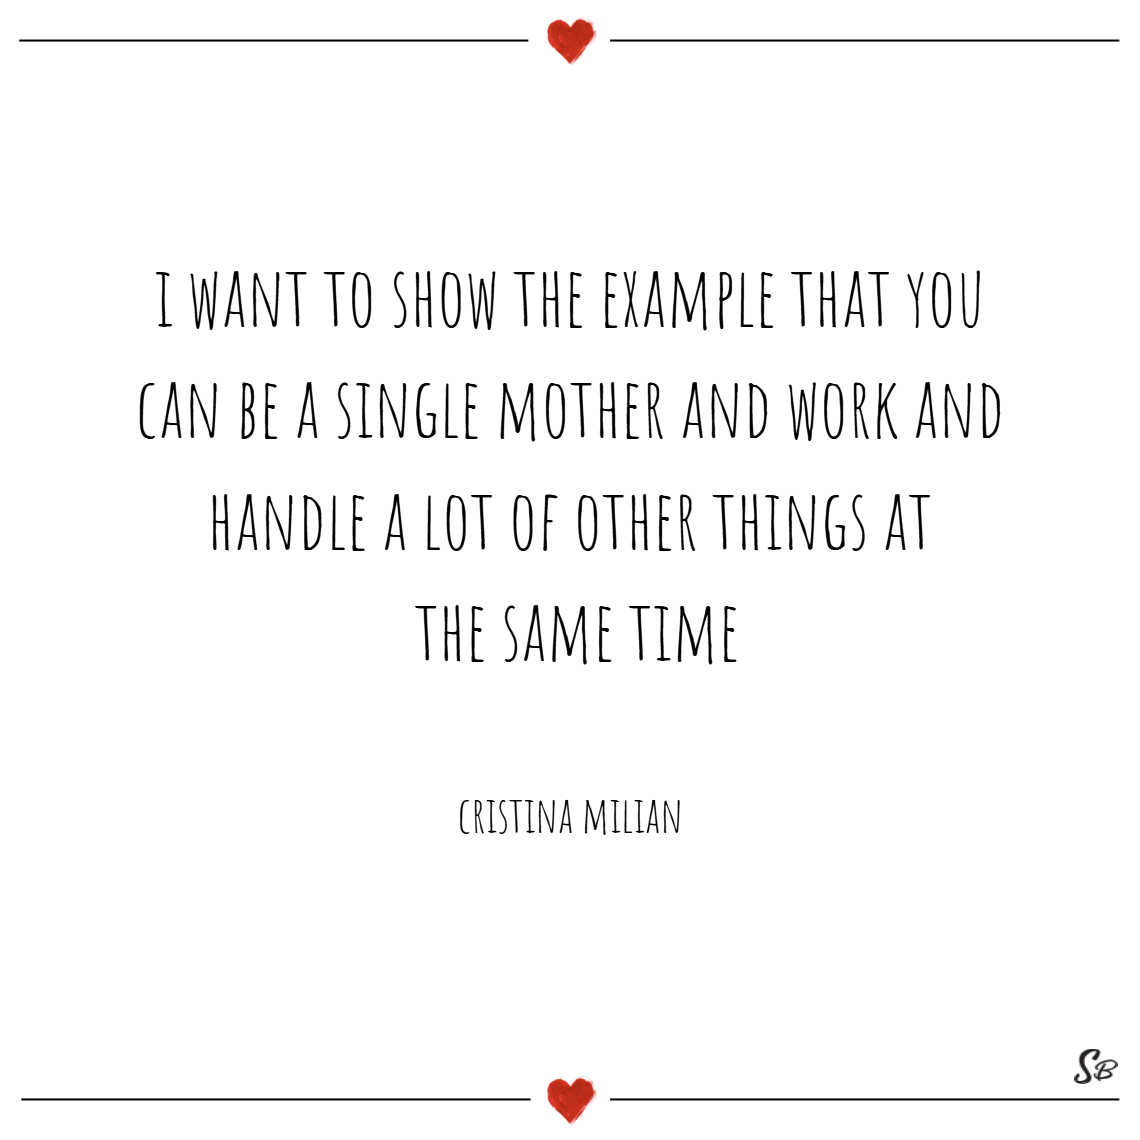 31 single mom quotes on struggle, endurance and love | spirit button